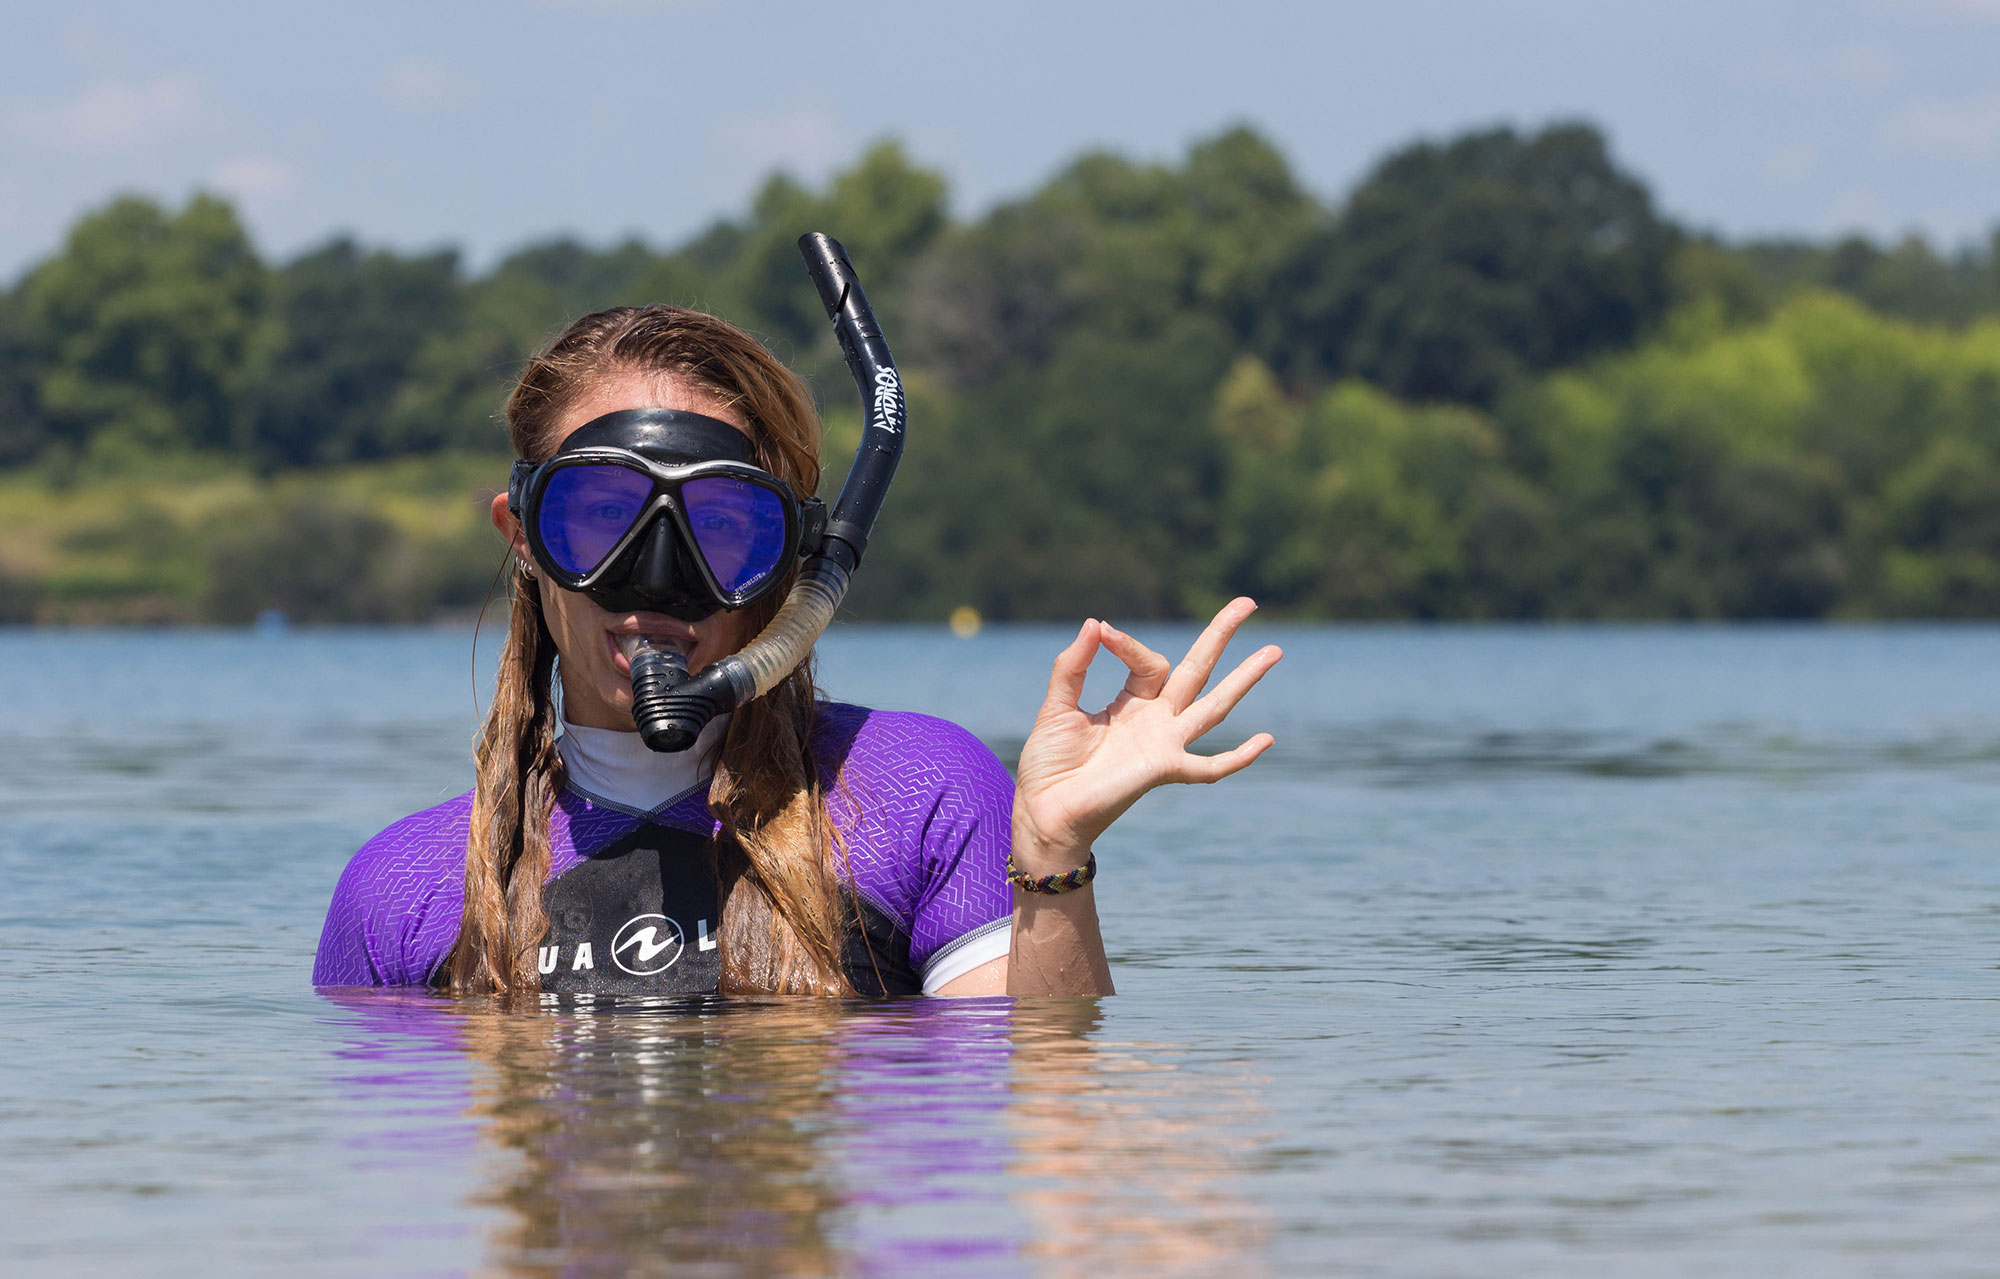 Scuba Diver Ali With Snorkel And Mask in the Water